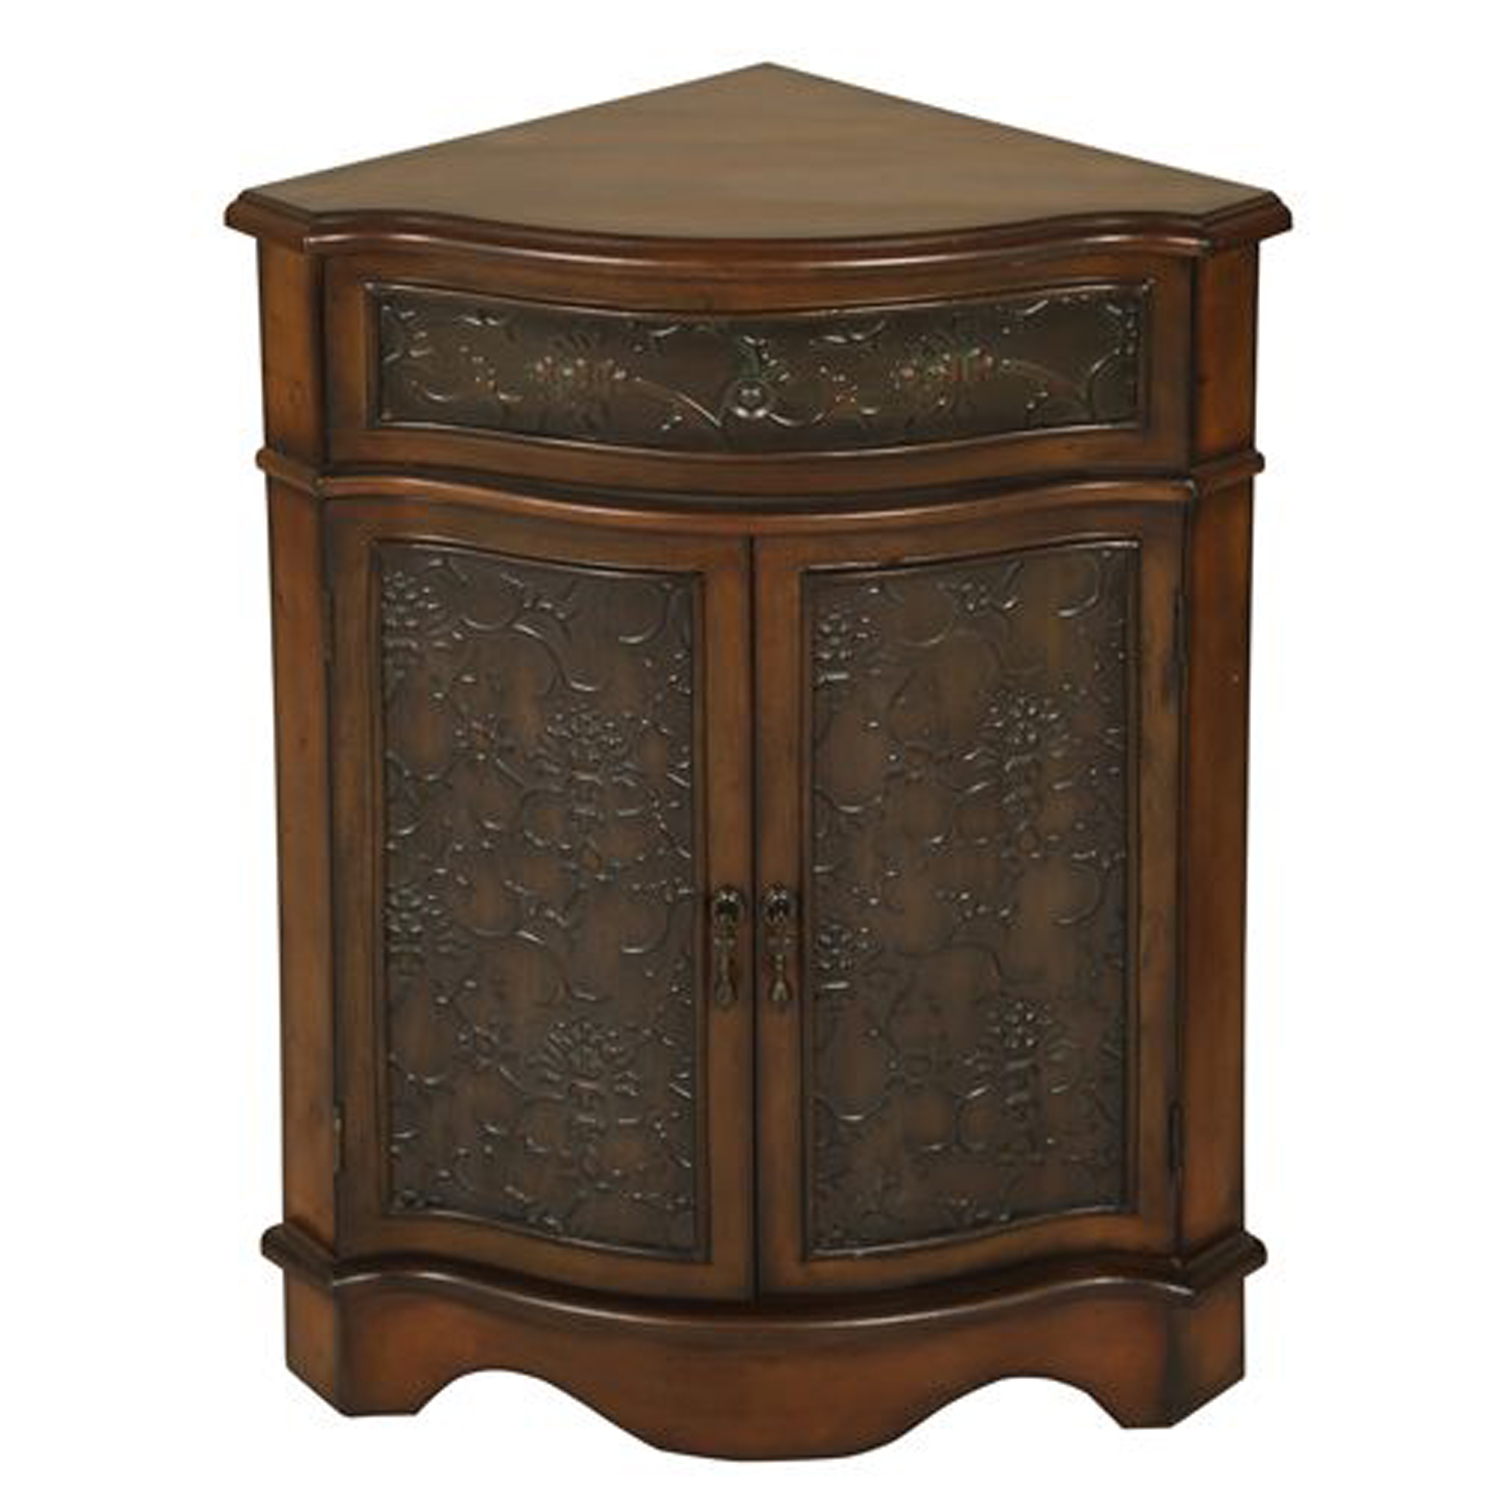 passport mario walnut corner cabinet bellacor accent tables and cabinets hover zoom trunk furniture brown bedside table wire side target antique wooden pedestal pineapple beach